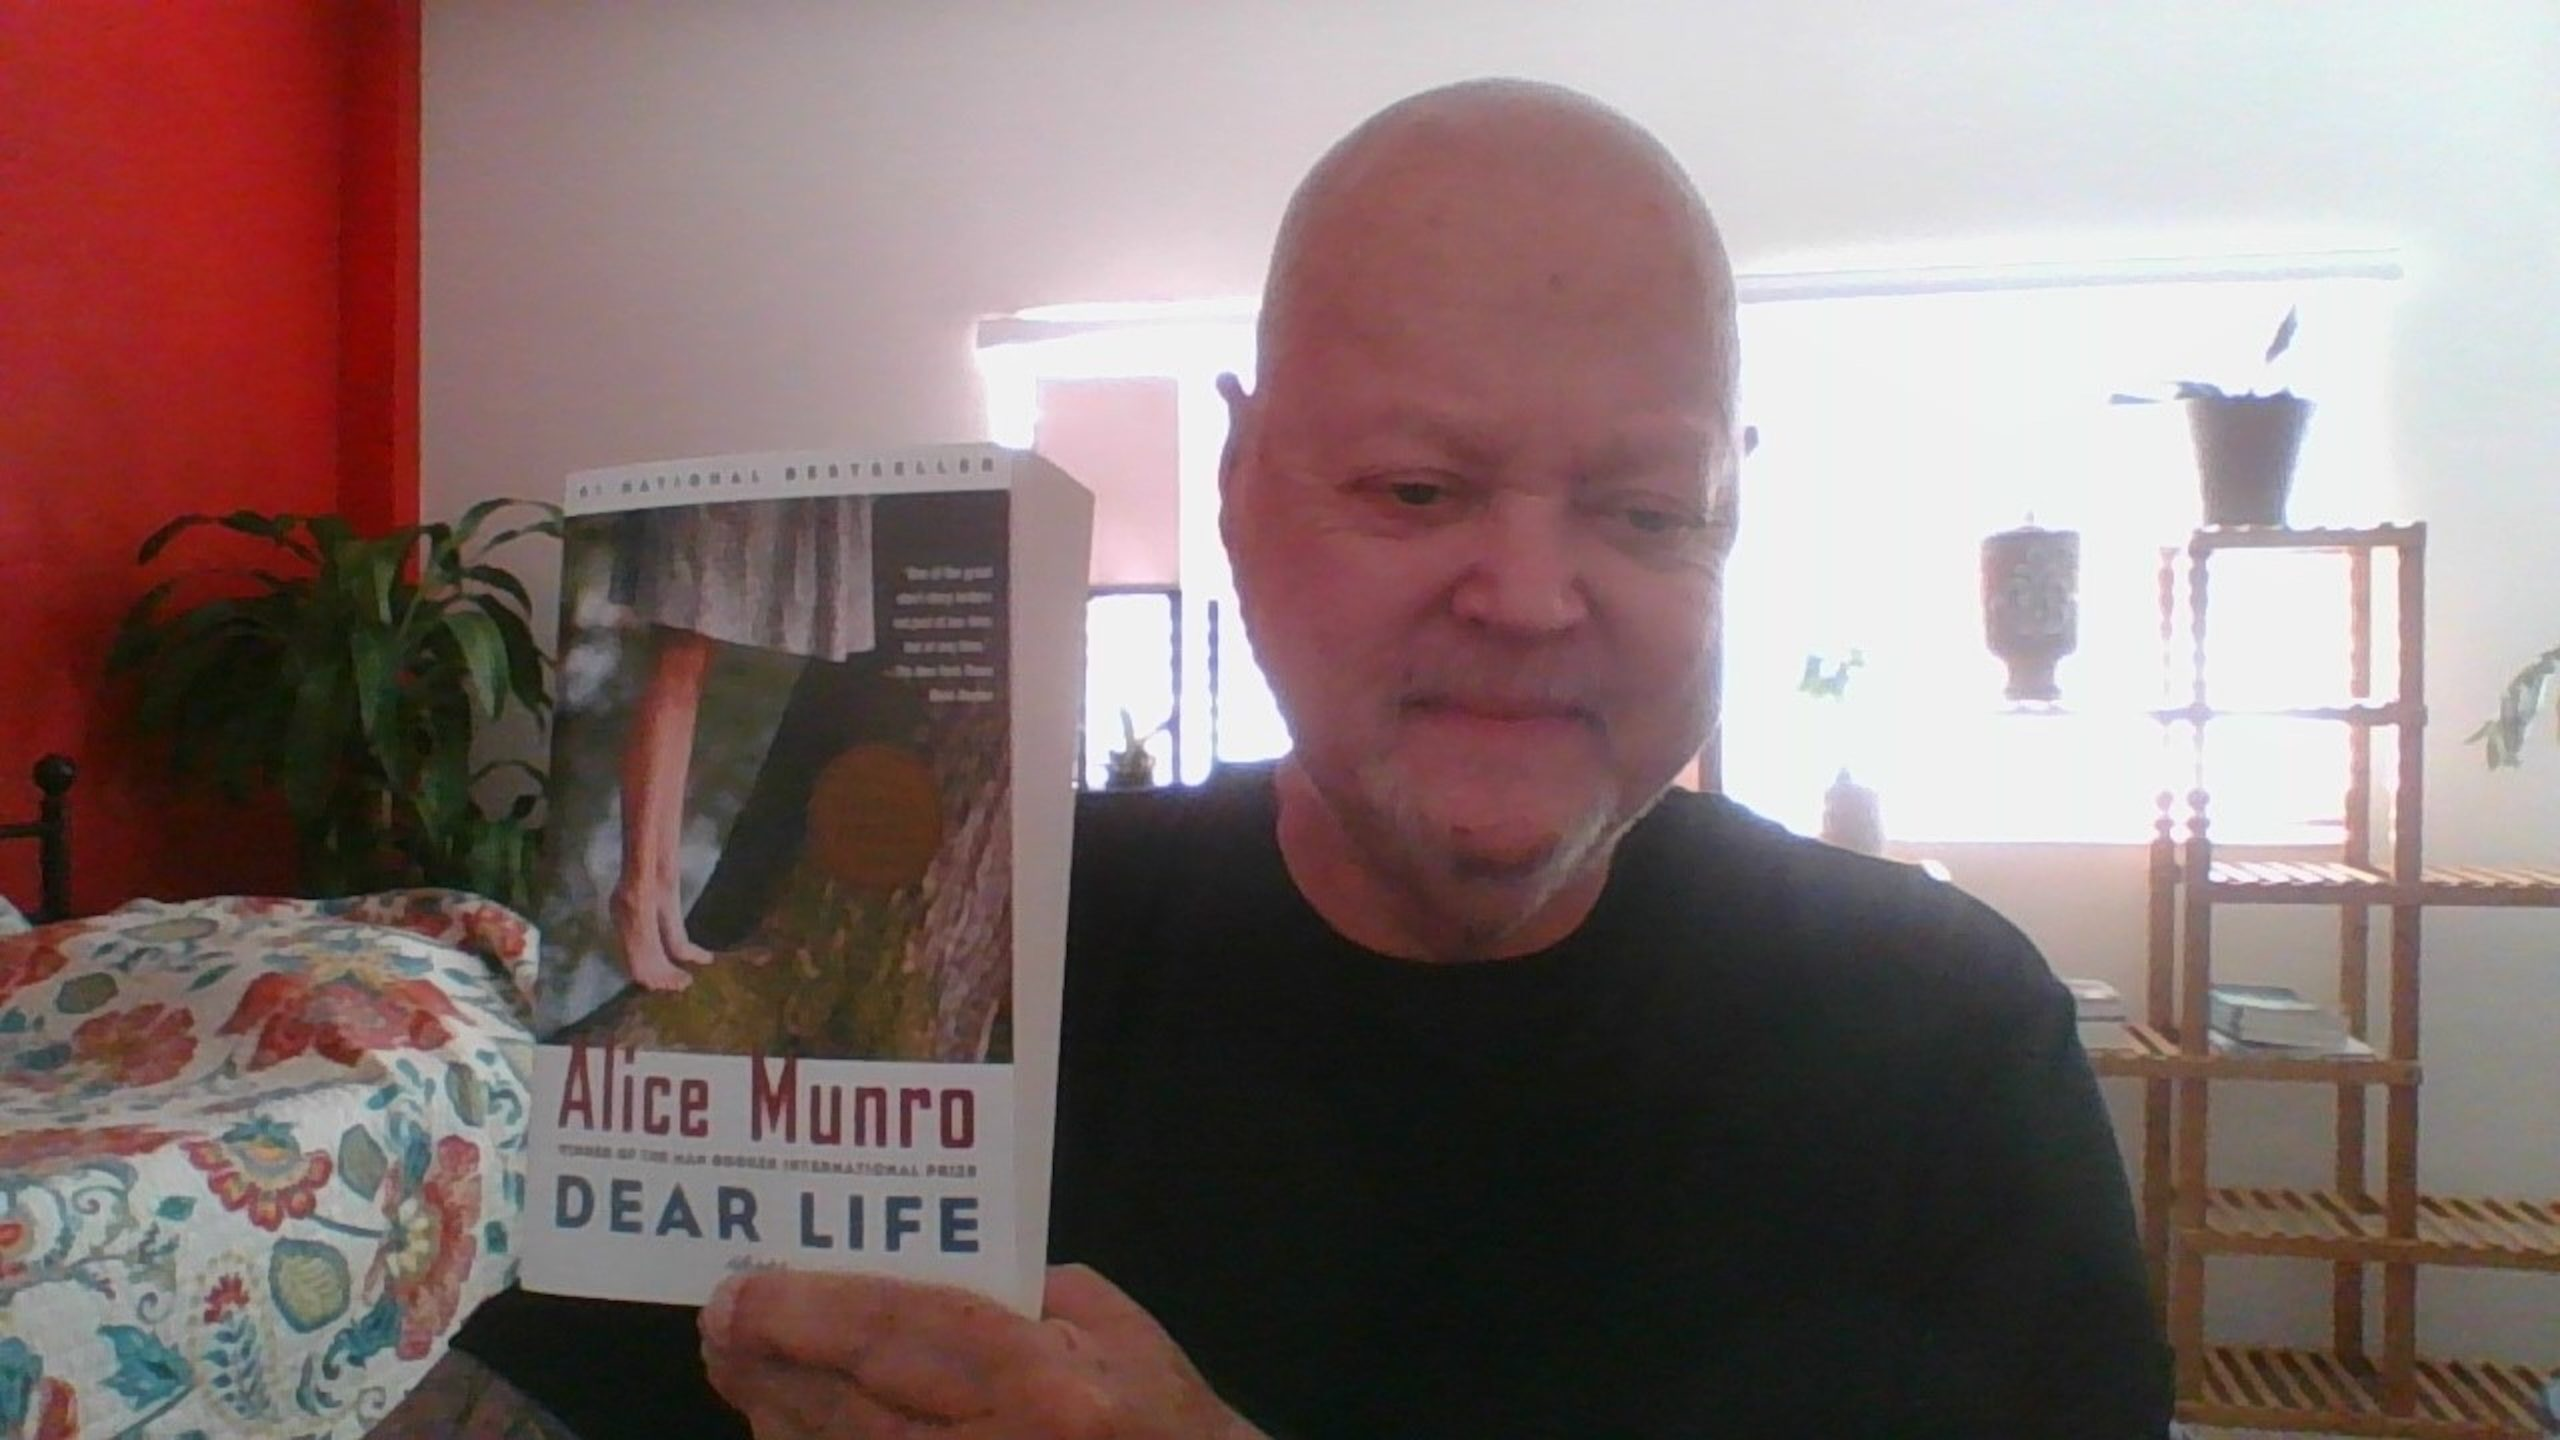 A man holding a book by Alice Munro